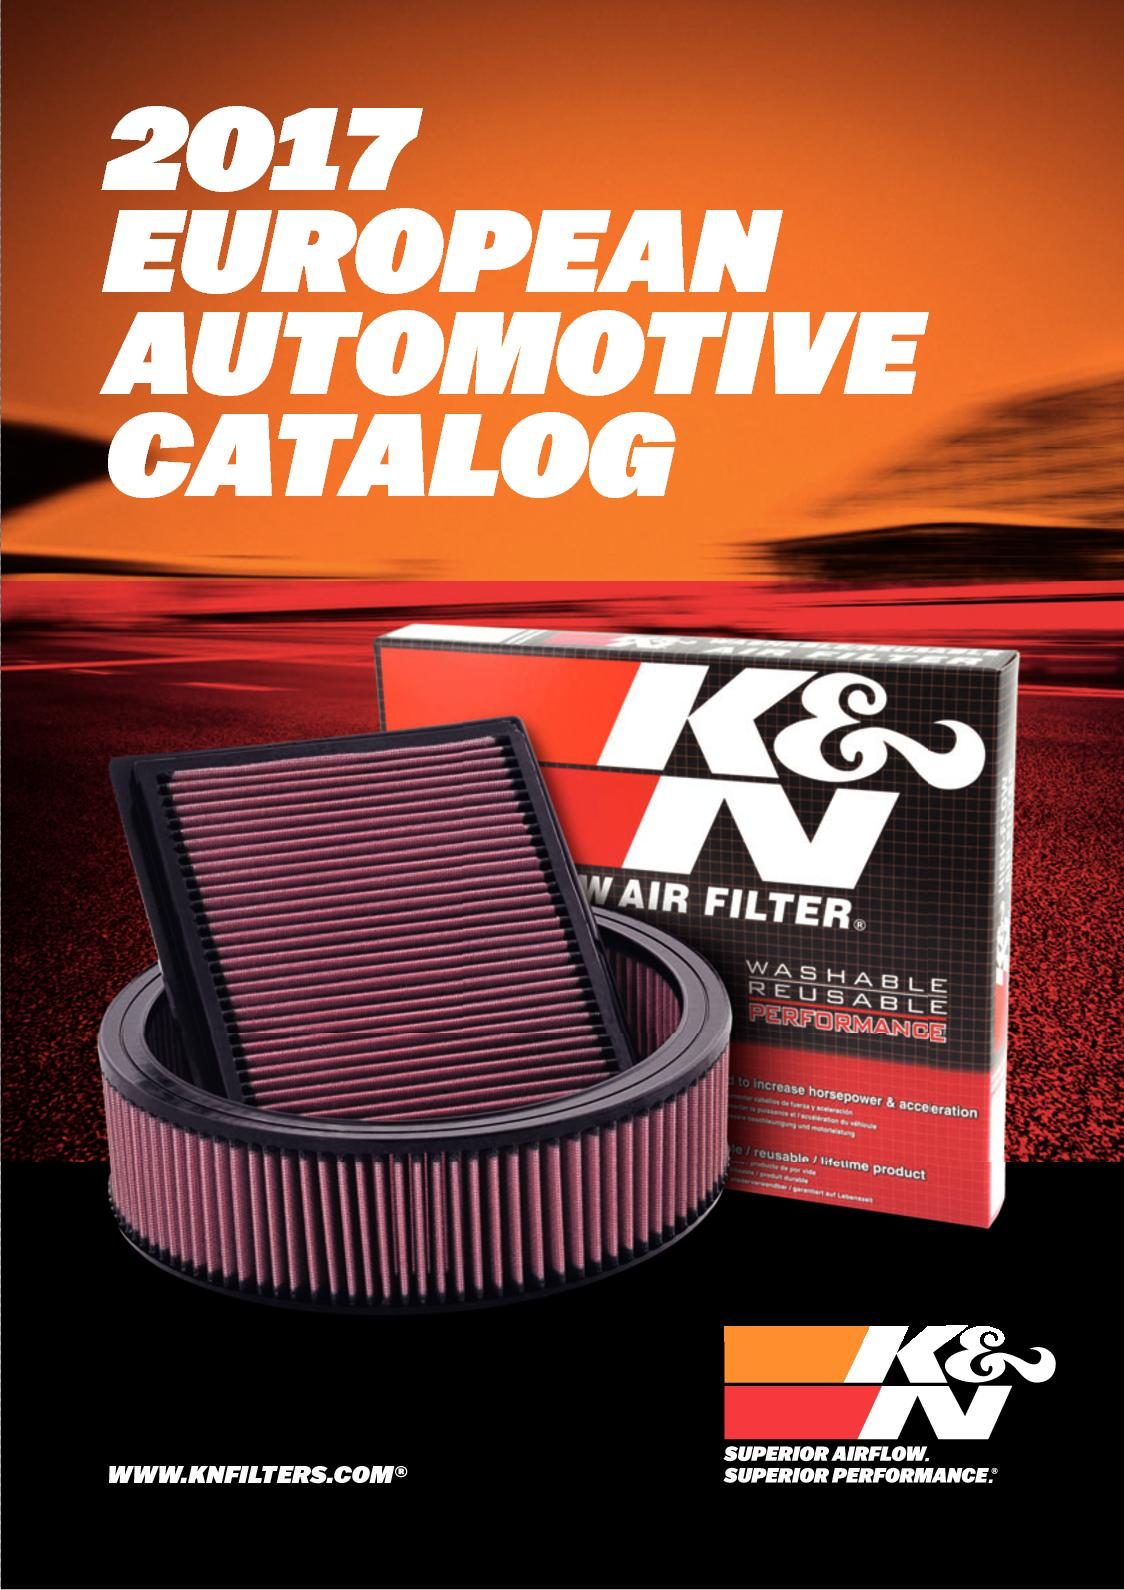 ALFA 6,75 KN Panel Replacement F 33-2546 K/&N Replacement Air Filter ALFA ROMEO